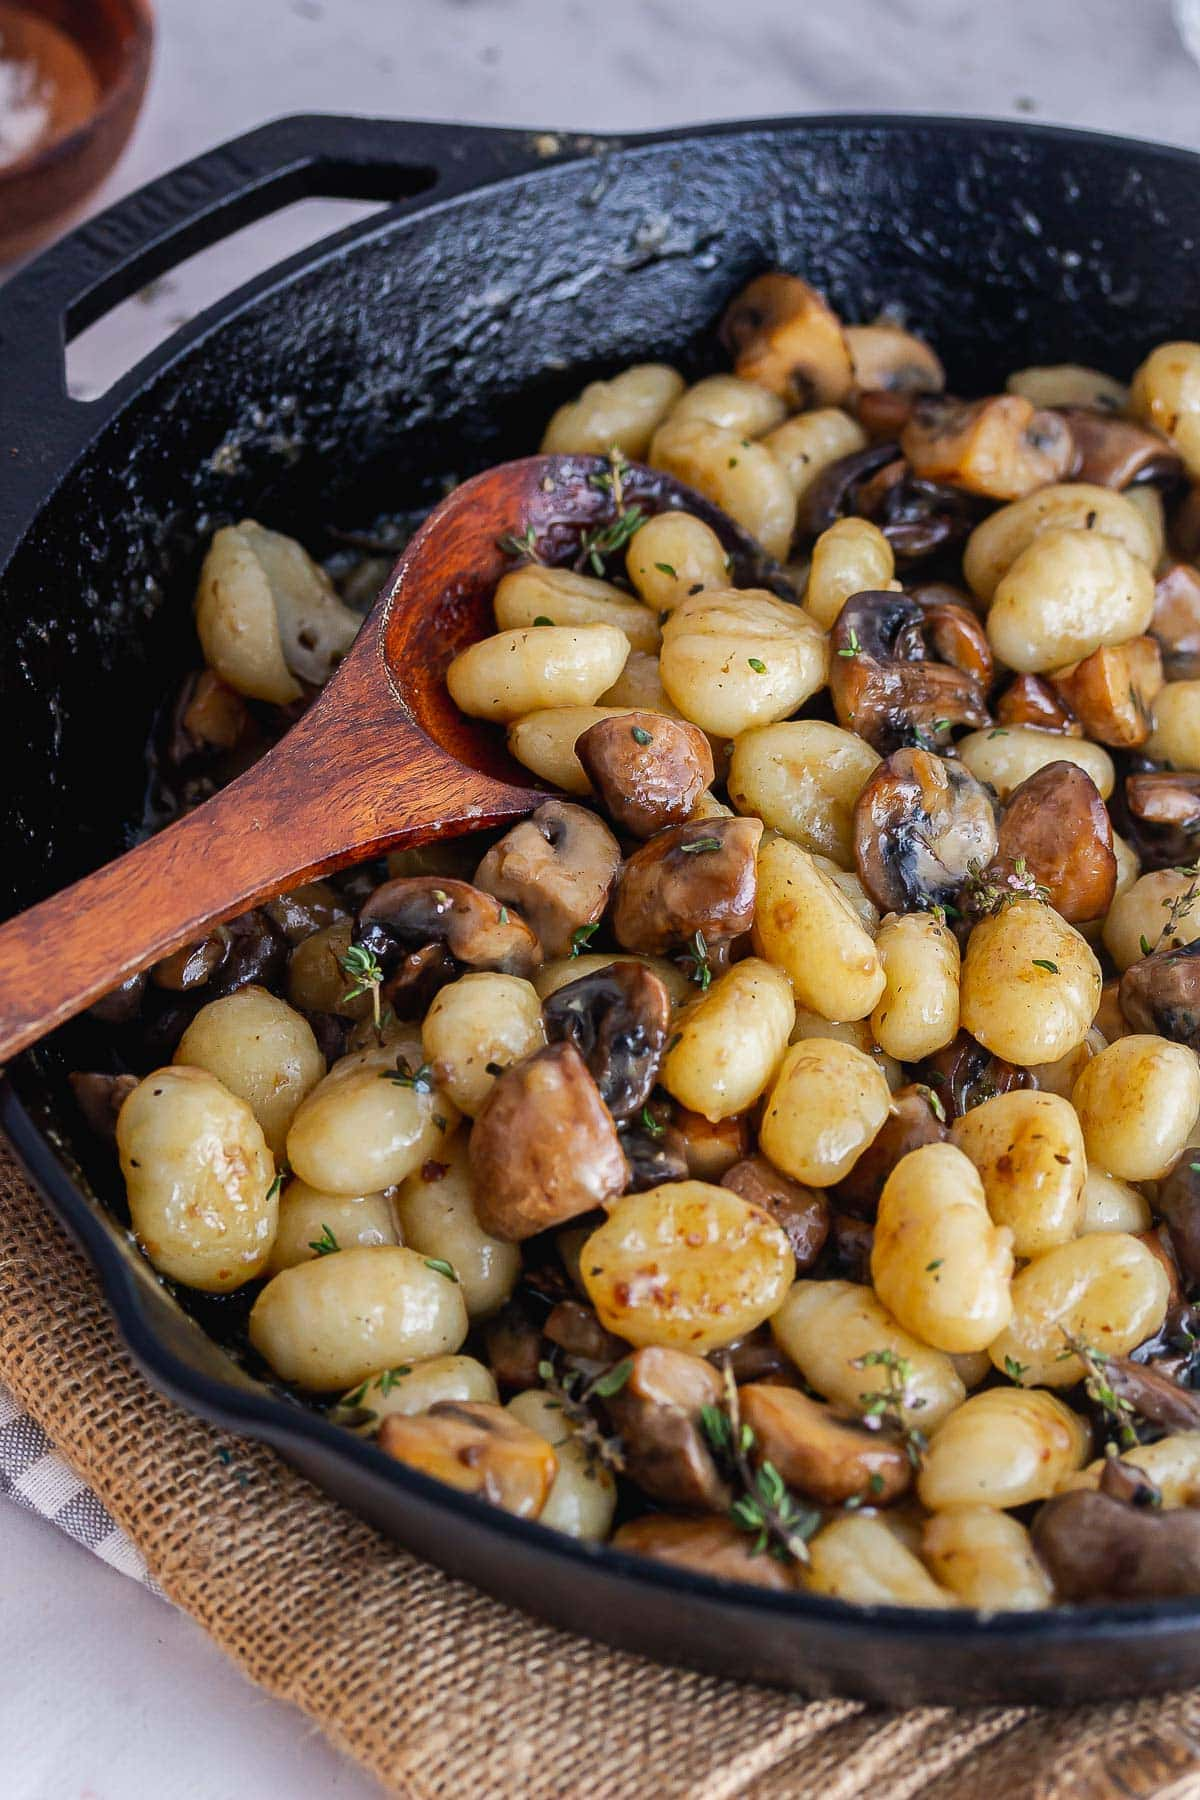 Gnocchi in a cast iron skillet with a wooden spoon on a hessian mat